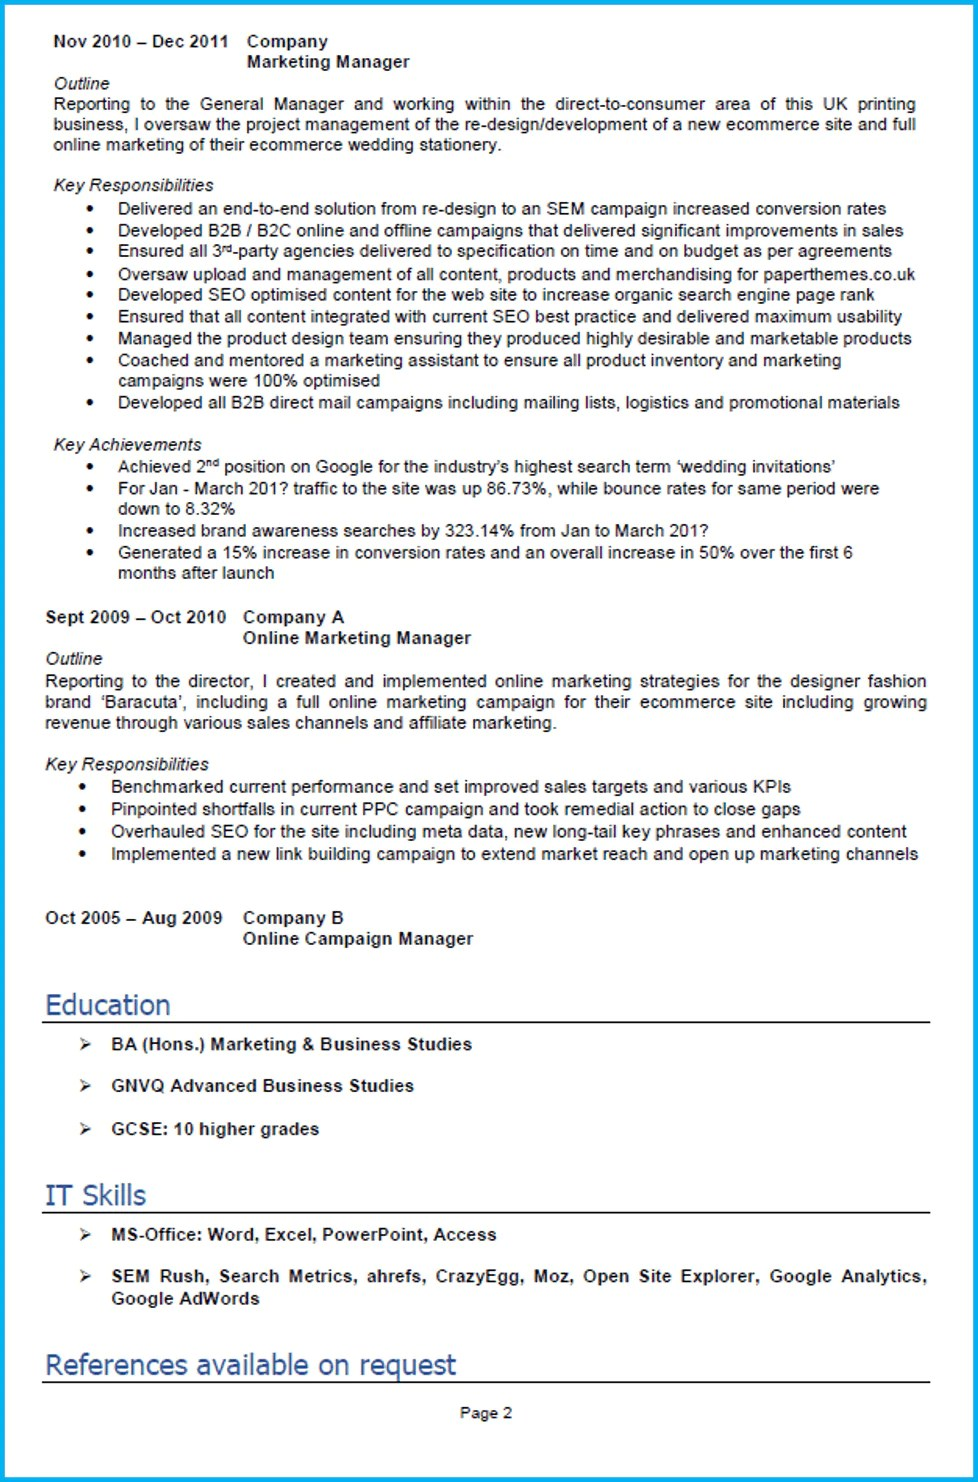 Funny Cover Letter Starengineering Teaching Travel Agent Job Digital  Marketing CV Example Page 2 B30f0af8 C207